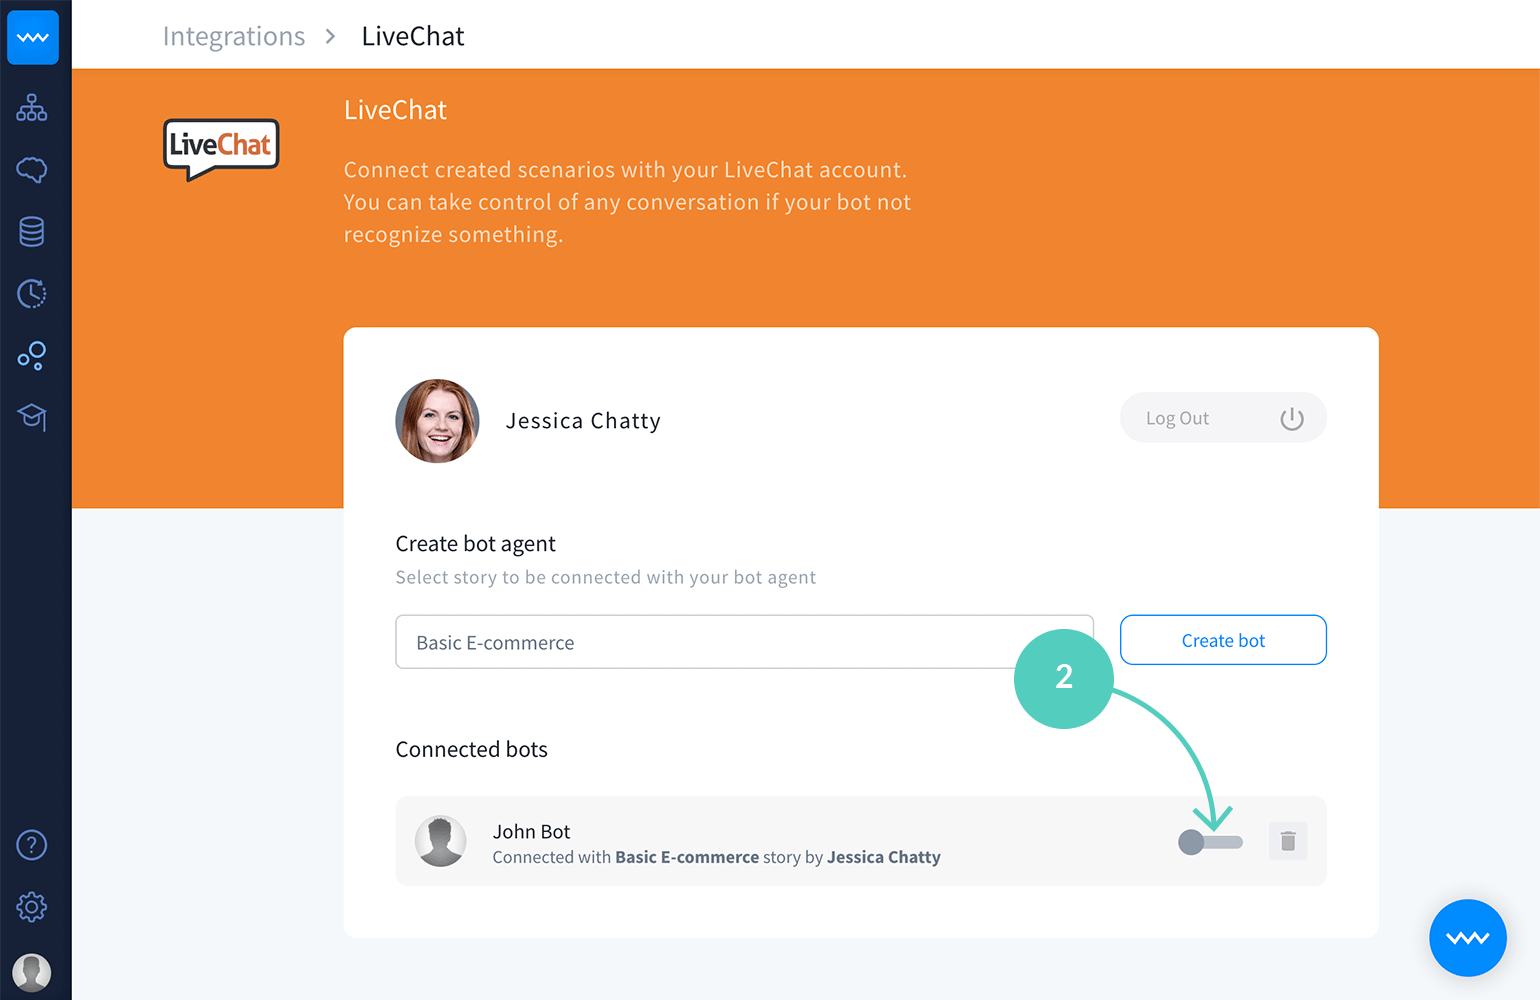 Chatbot LiveChat Integration: Turn off the toggle button to disconnect a bot